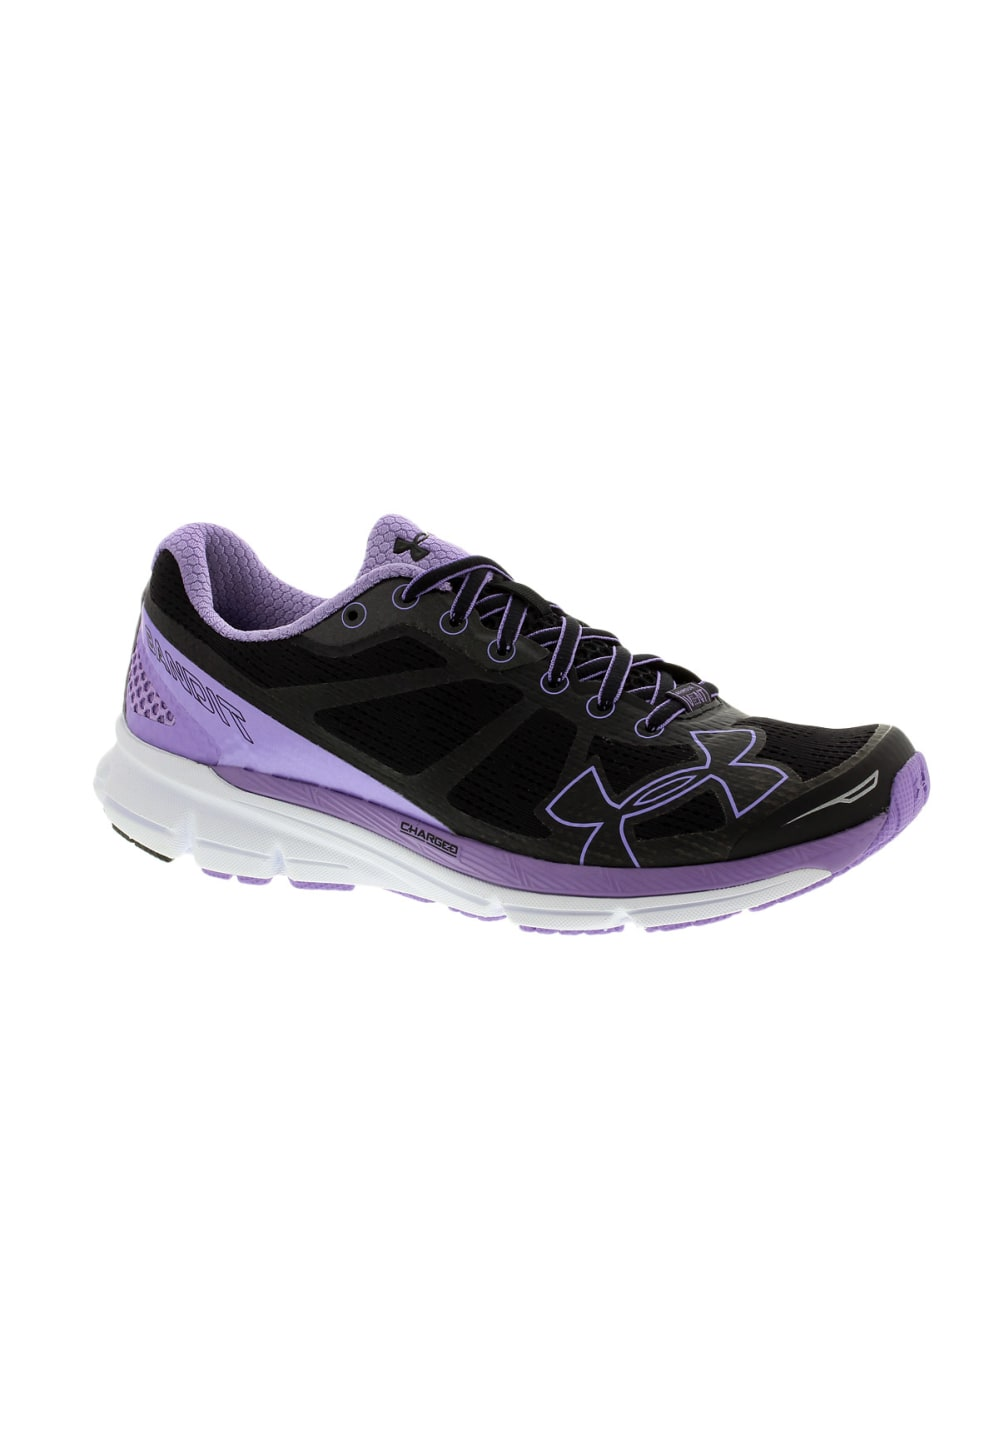 Under Armour Charged Bandit Femmes Chaussures running